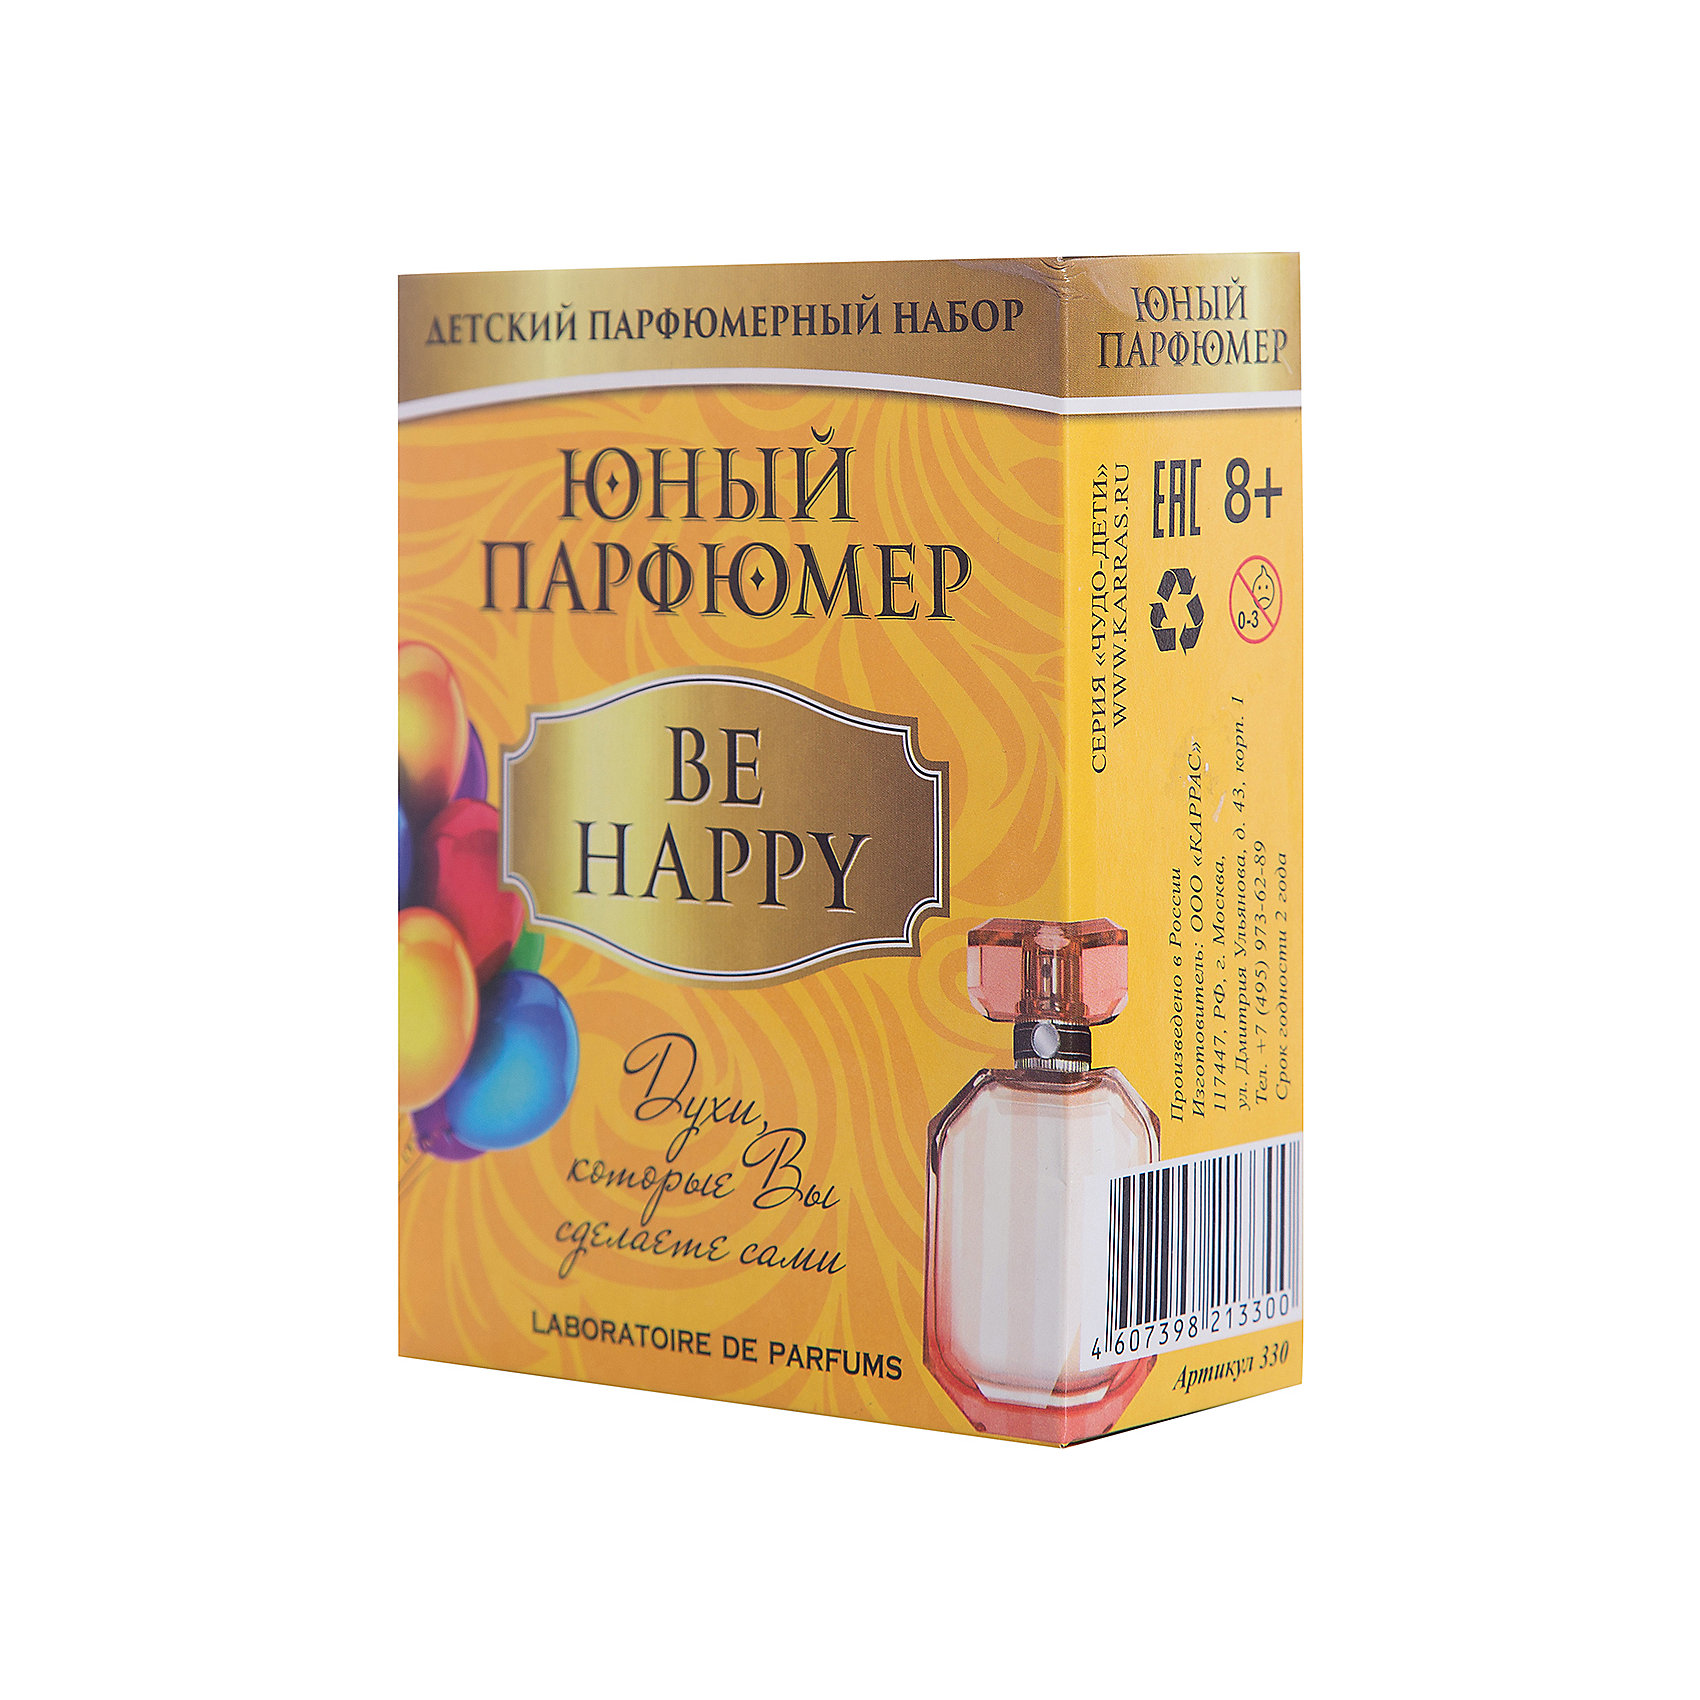 Каррас Набор Юный Парфюмер (мини) BE HAPPY giftman бергамот 10 мл 100